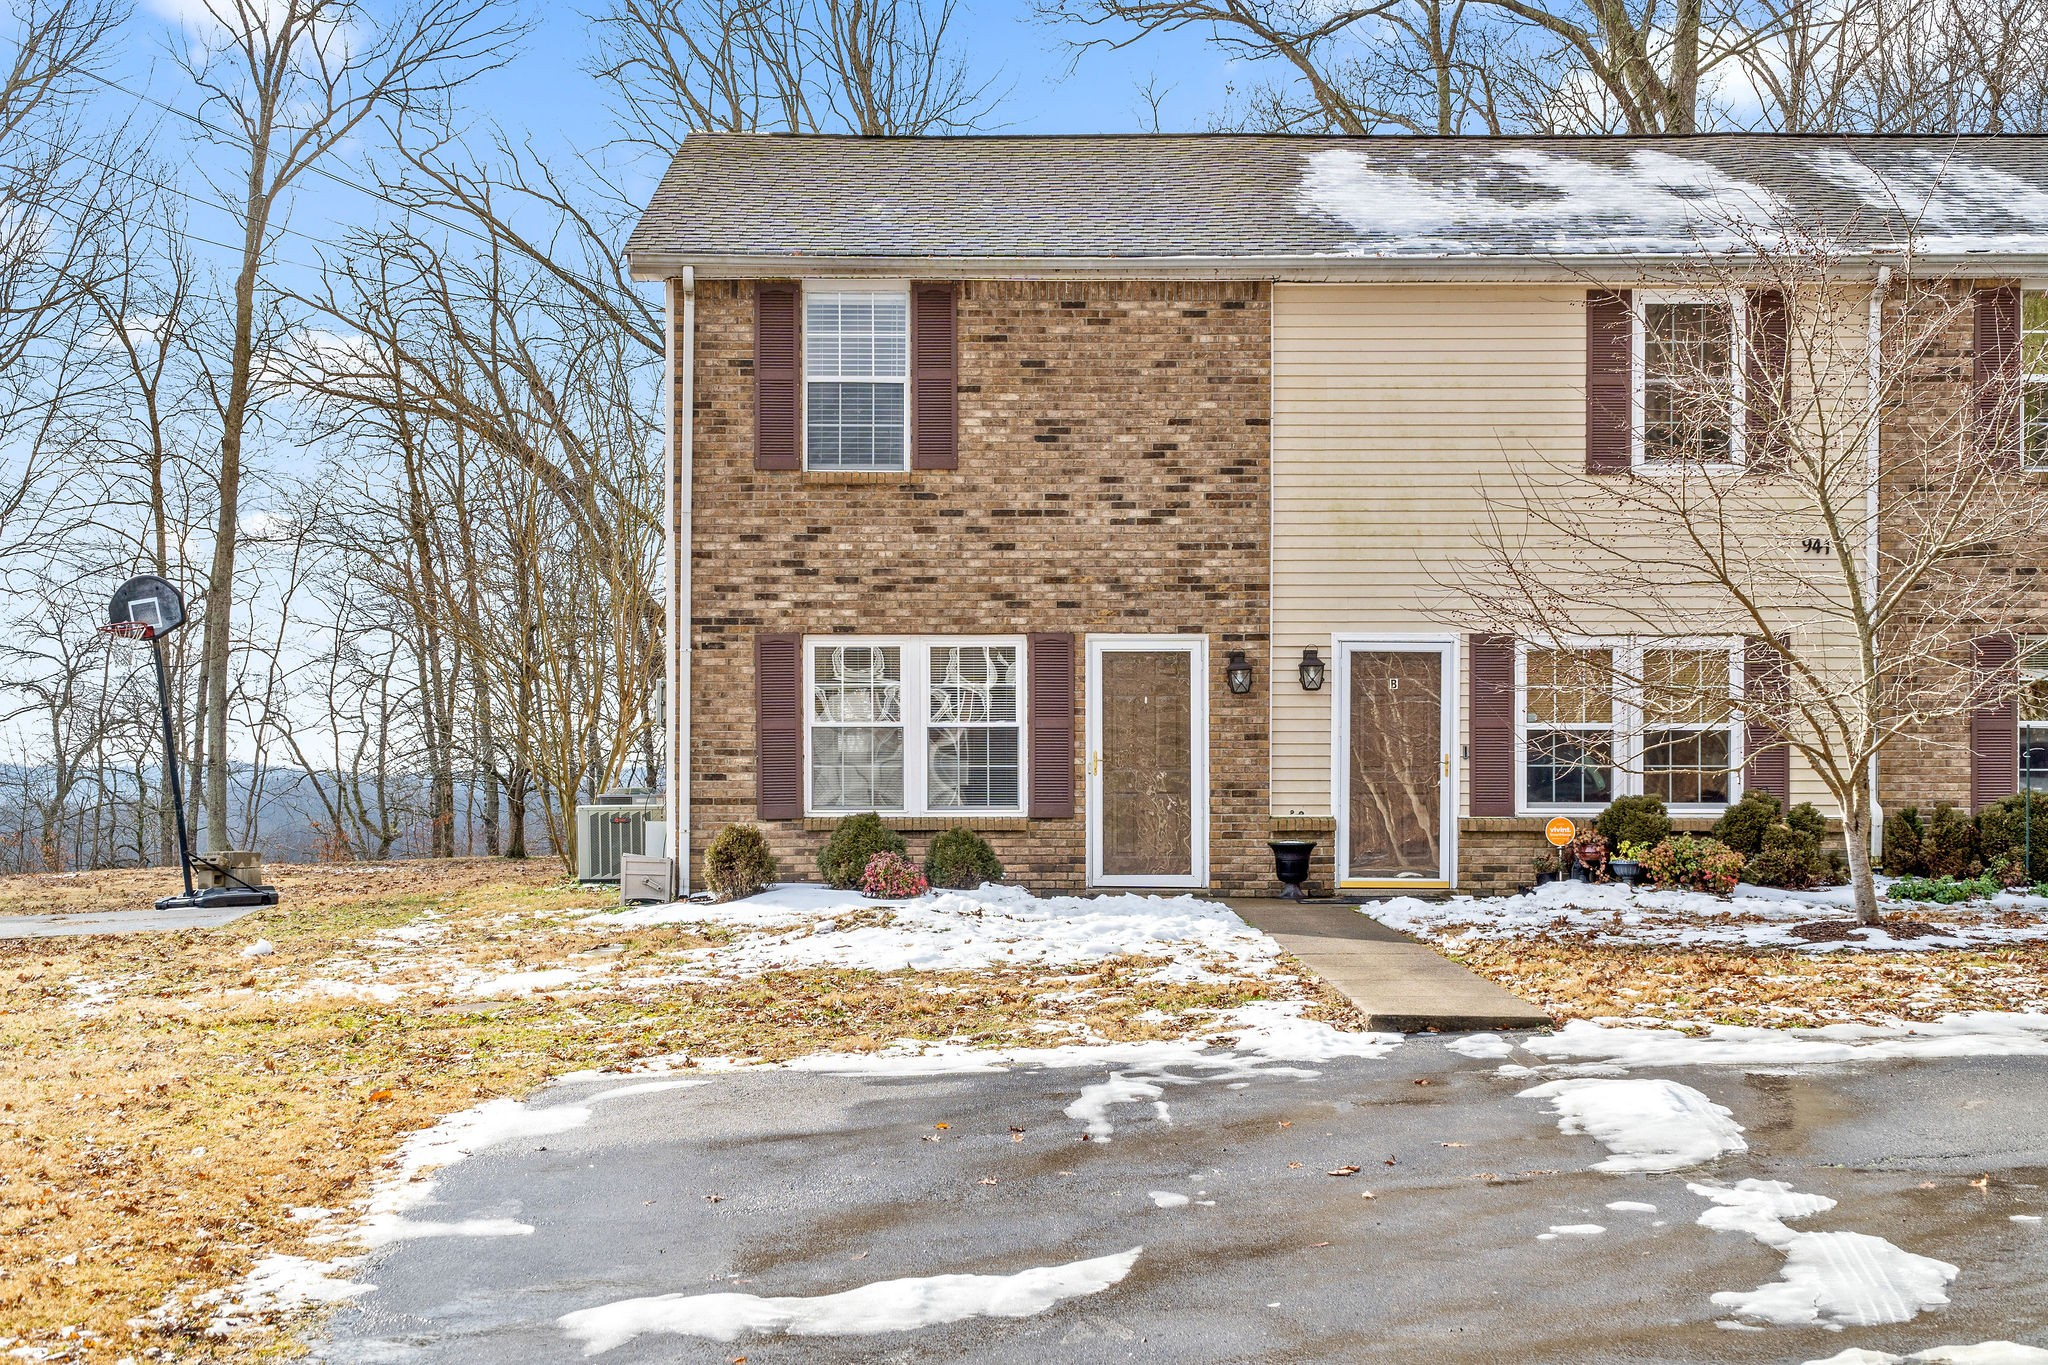 This Adorable Townhome is Conveniently Located Between Downtown & Exit 11 for an Easy Commute! - Enjoy the AMAZING River View from the Upper or Lower Back Decks - Kitchen Appliances & Washer/Dryer is Included - NEW Stove - NEW Paint - This Picture Perfect Unit is Ready to Go!